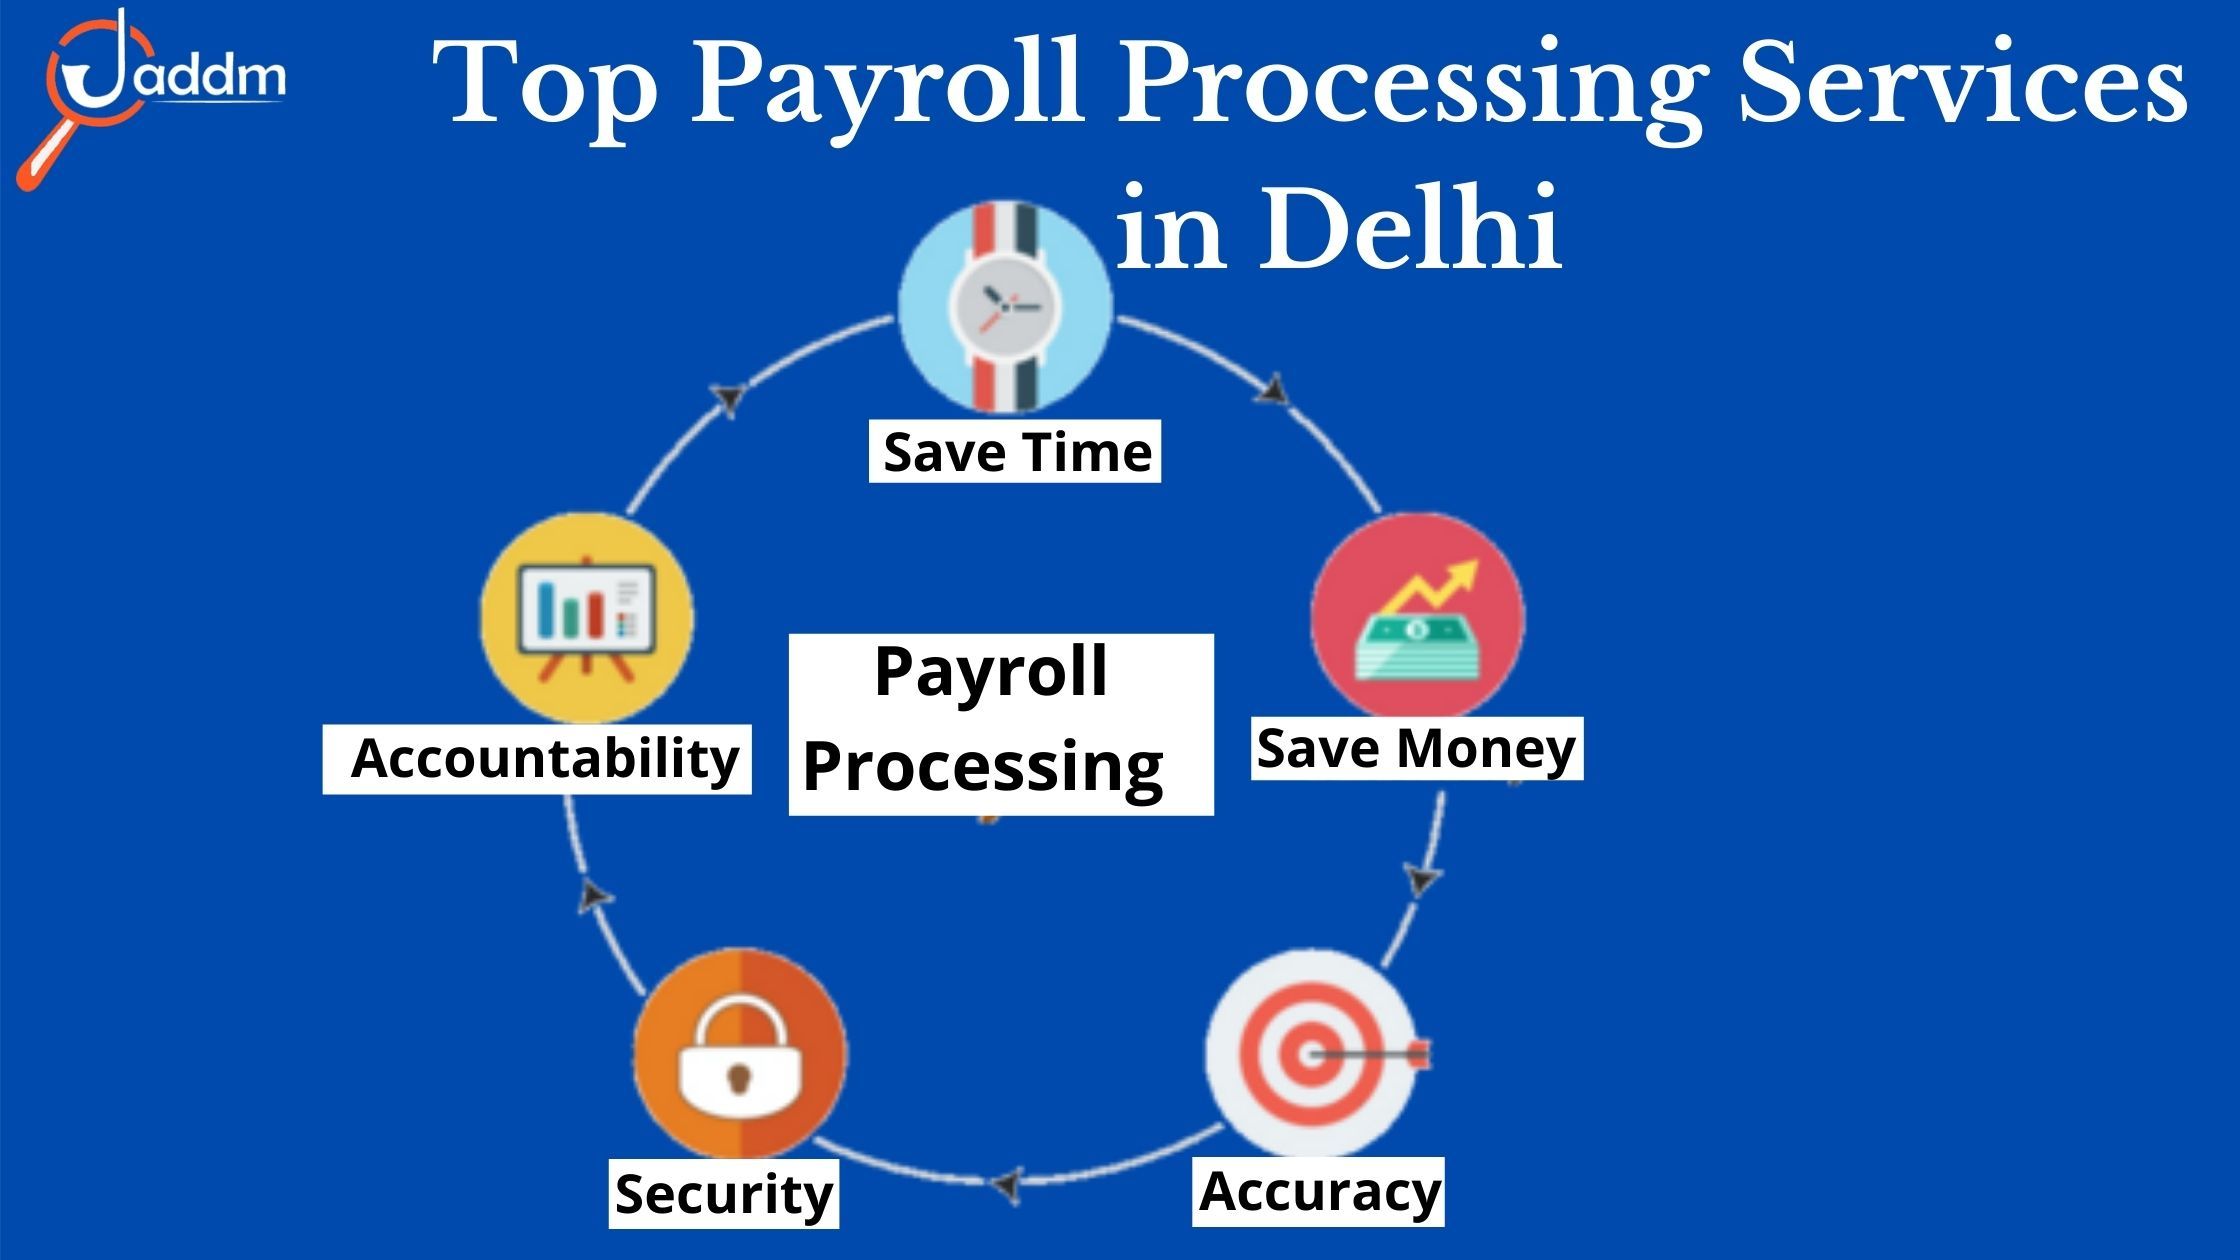 Top payroll processing services in Delhi